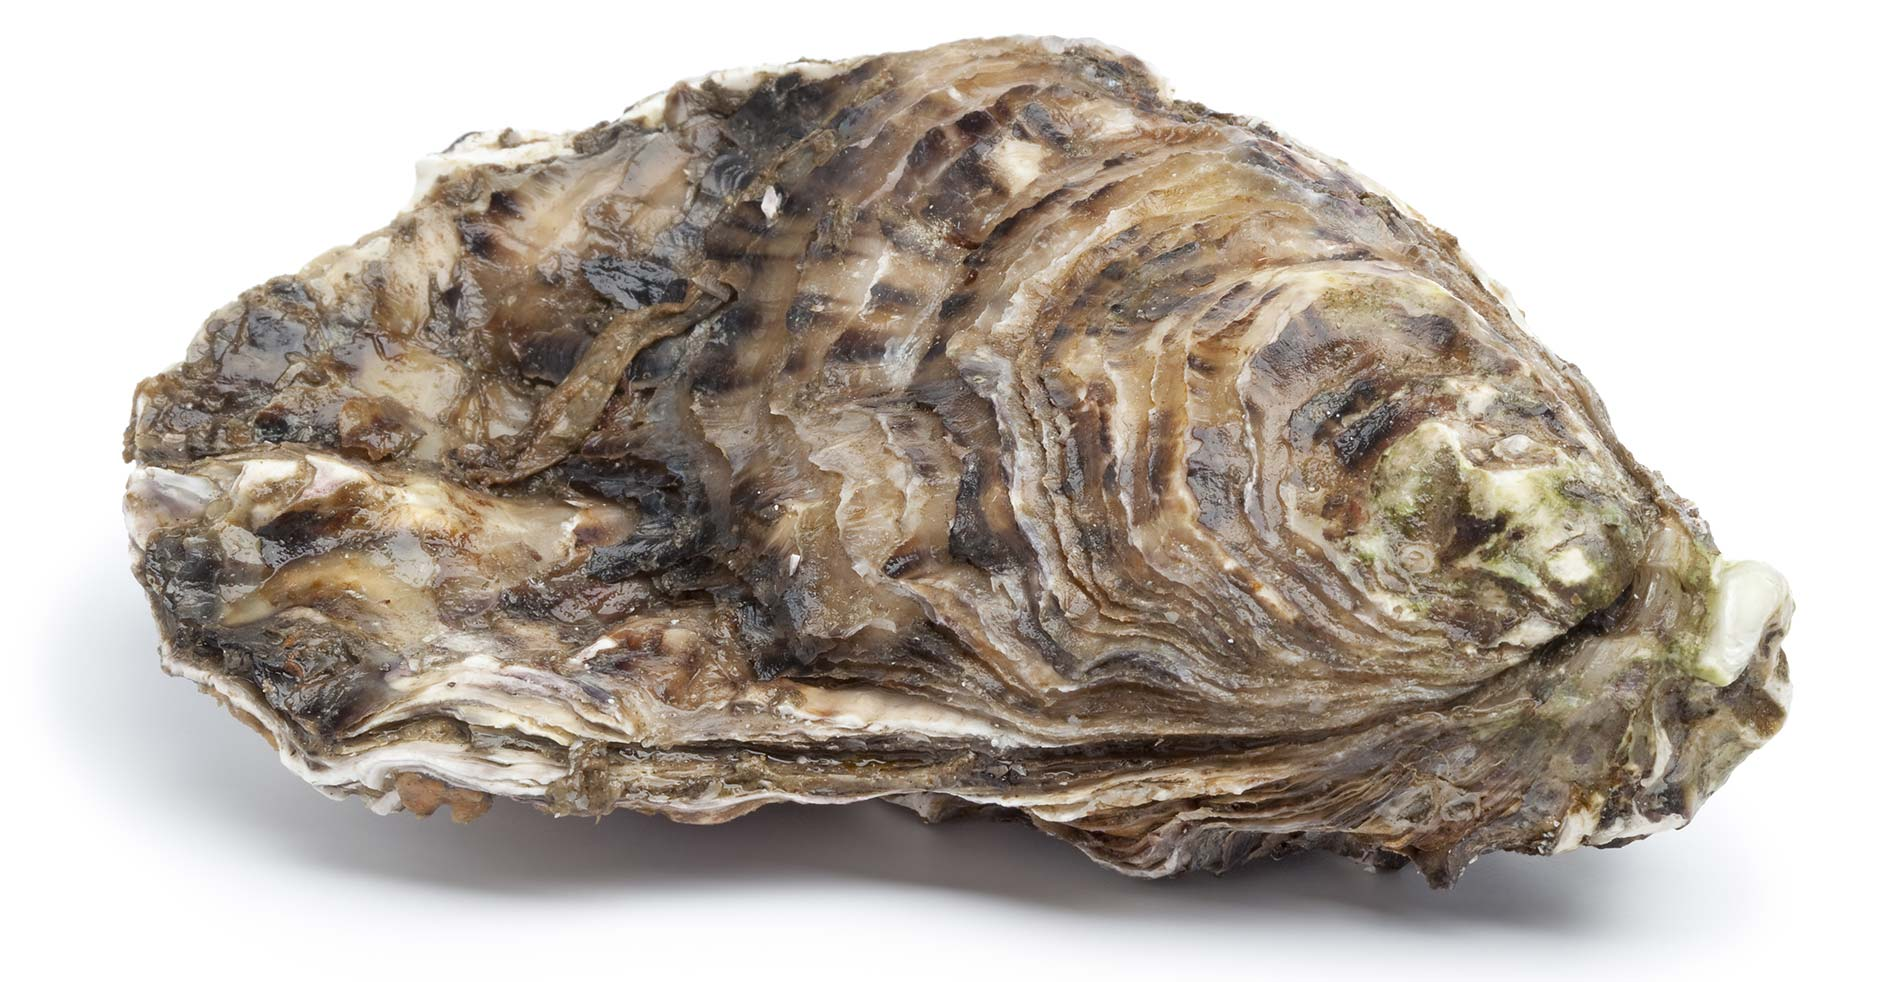 Oysters available in stock and pre-order from J.J. McDonnell & Co.